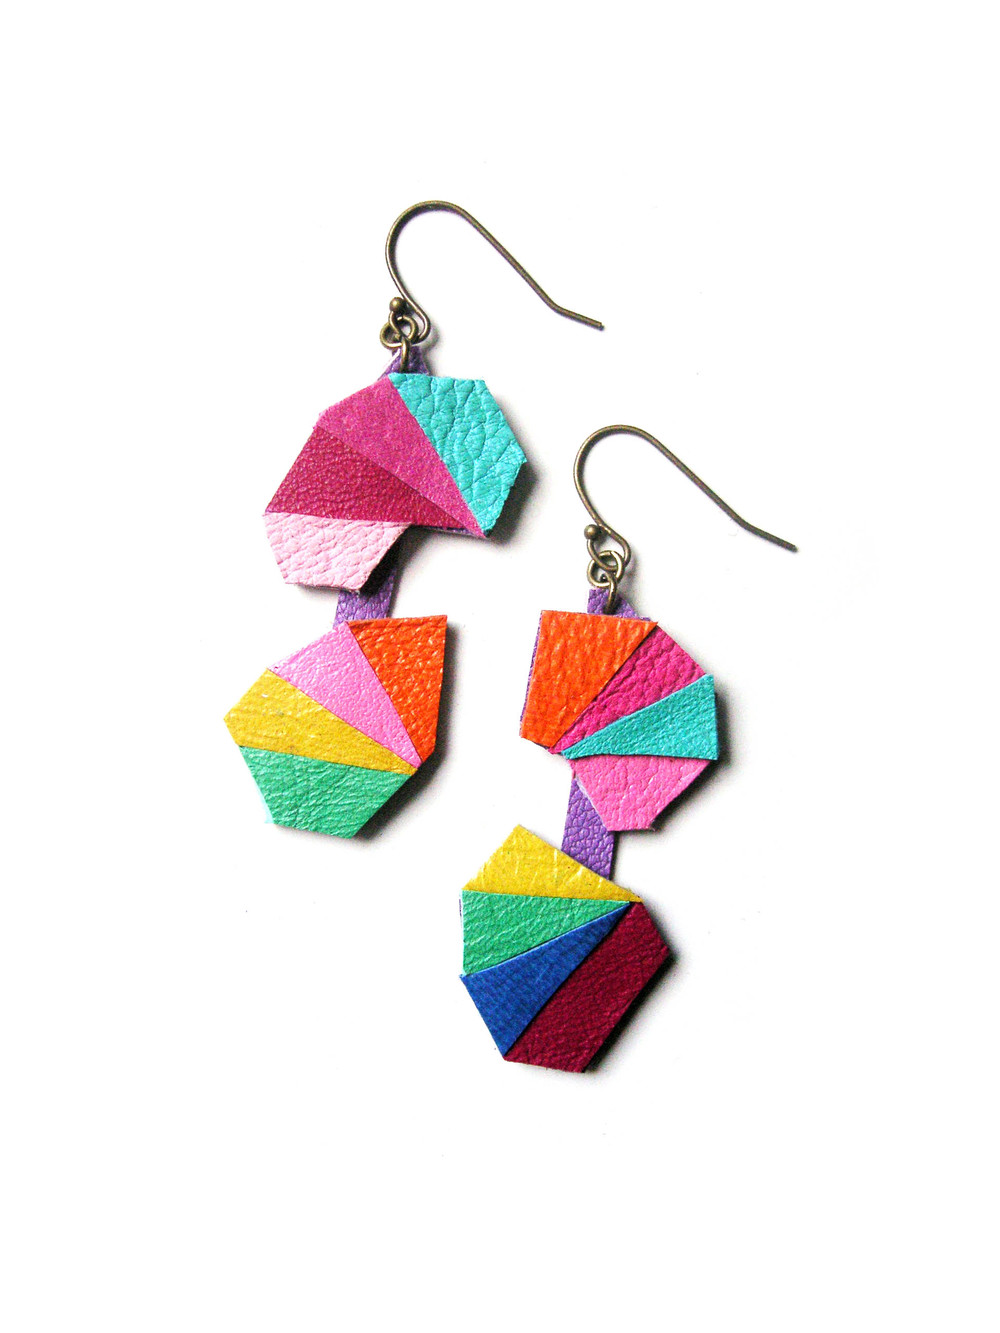 Leather Earrings Geometric Triangle Kaleidoscopes 4.jpg